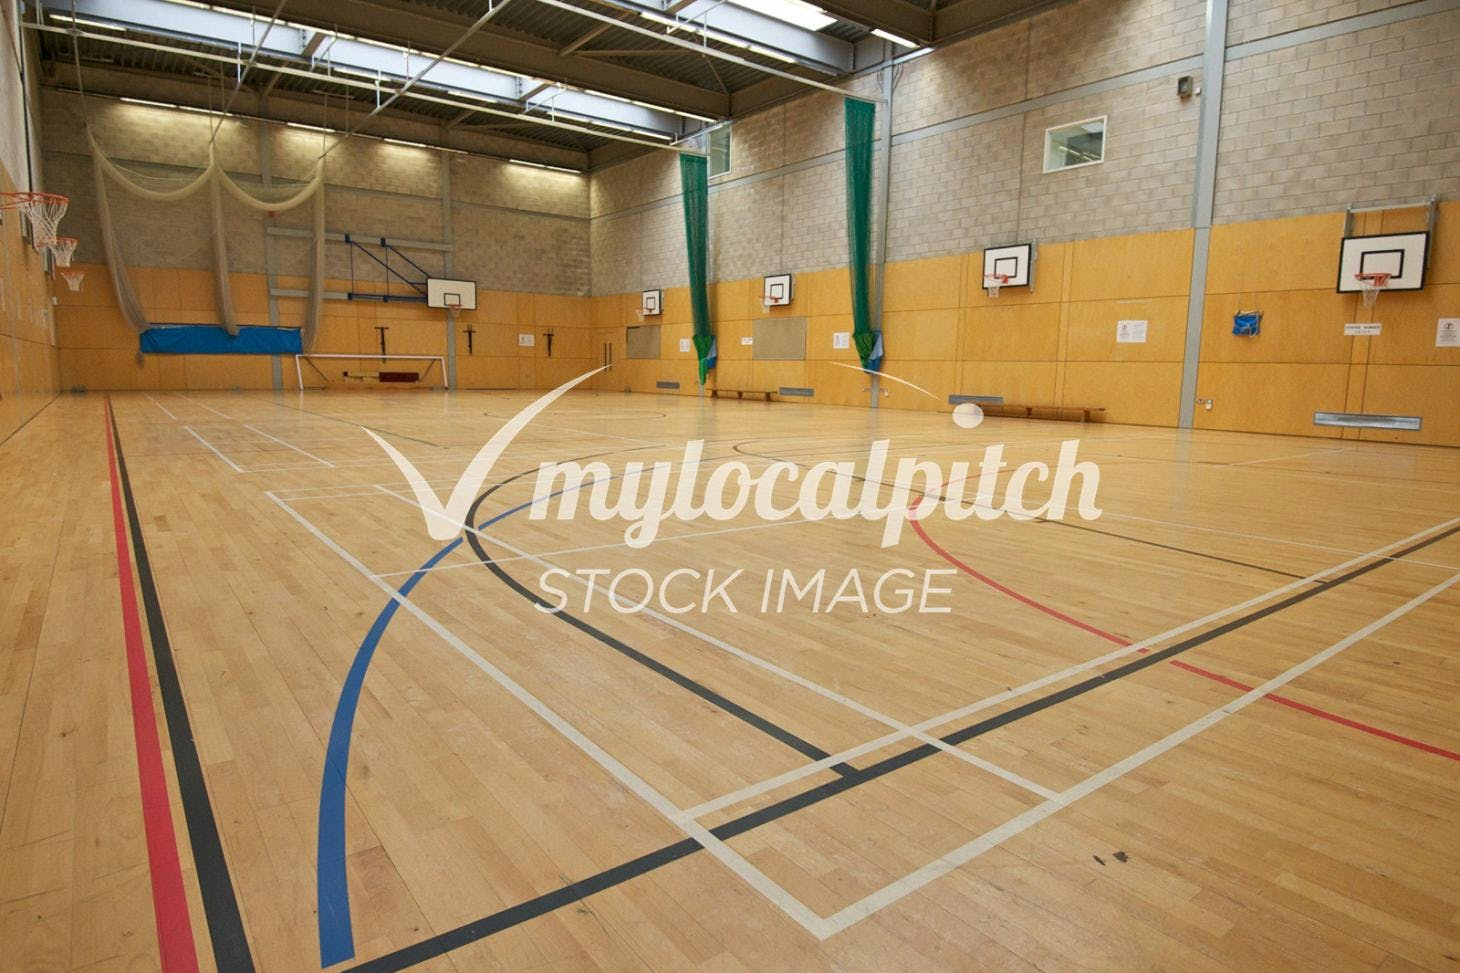 The Holy Cross School Indoor basketball court